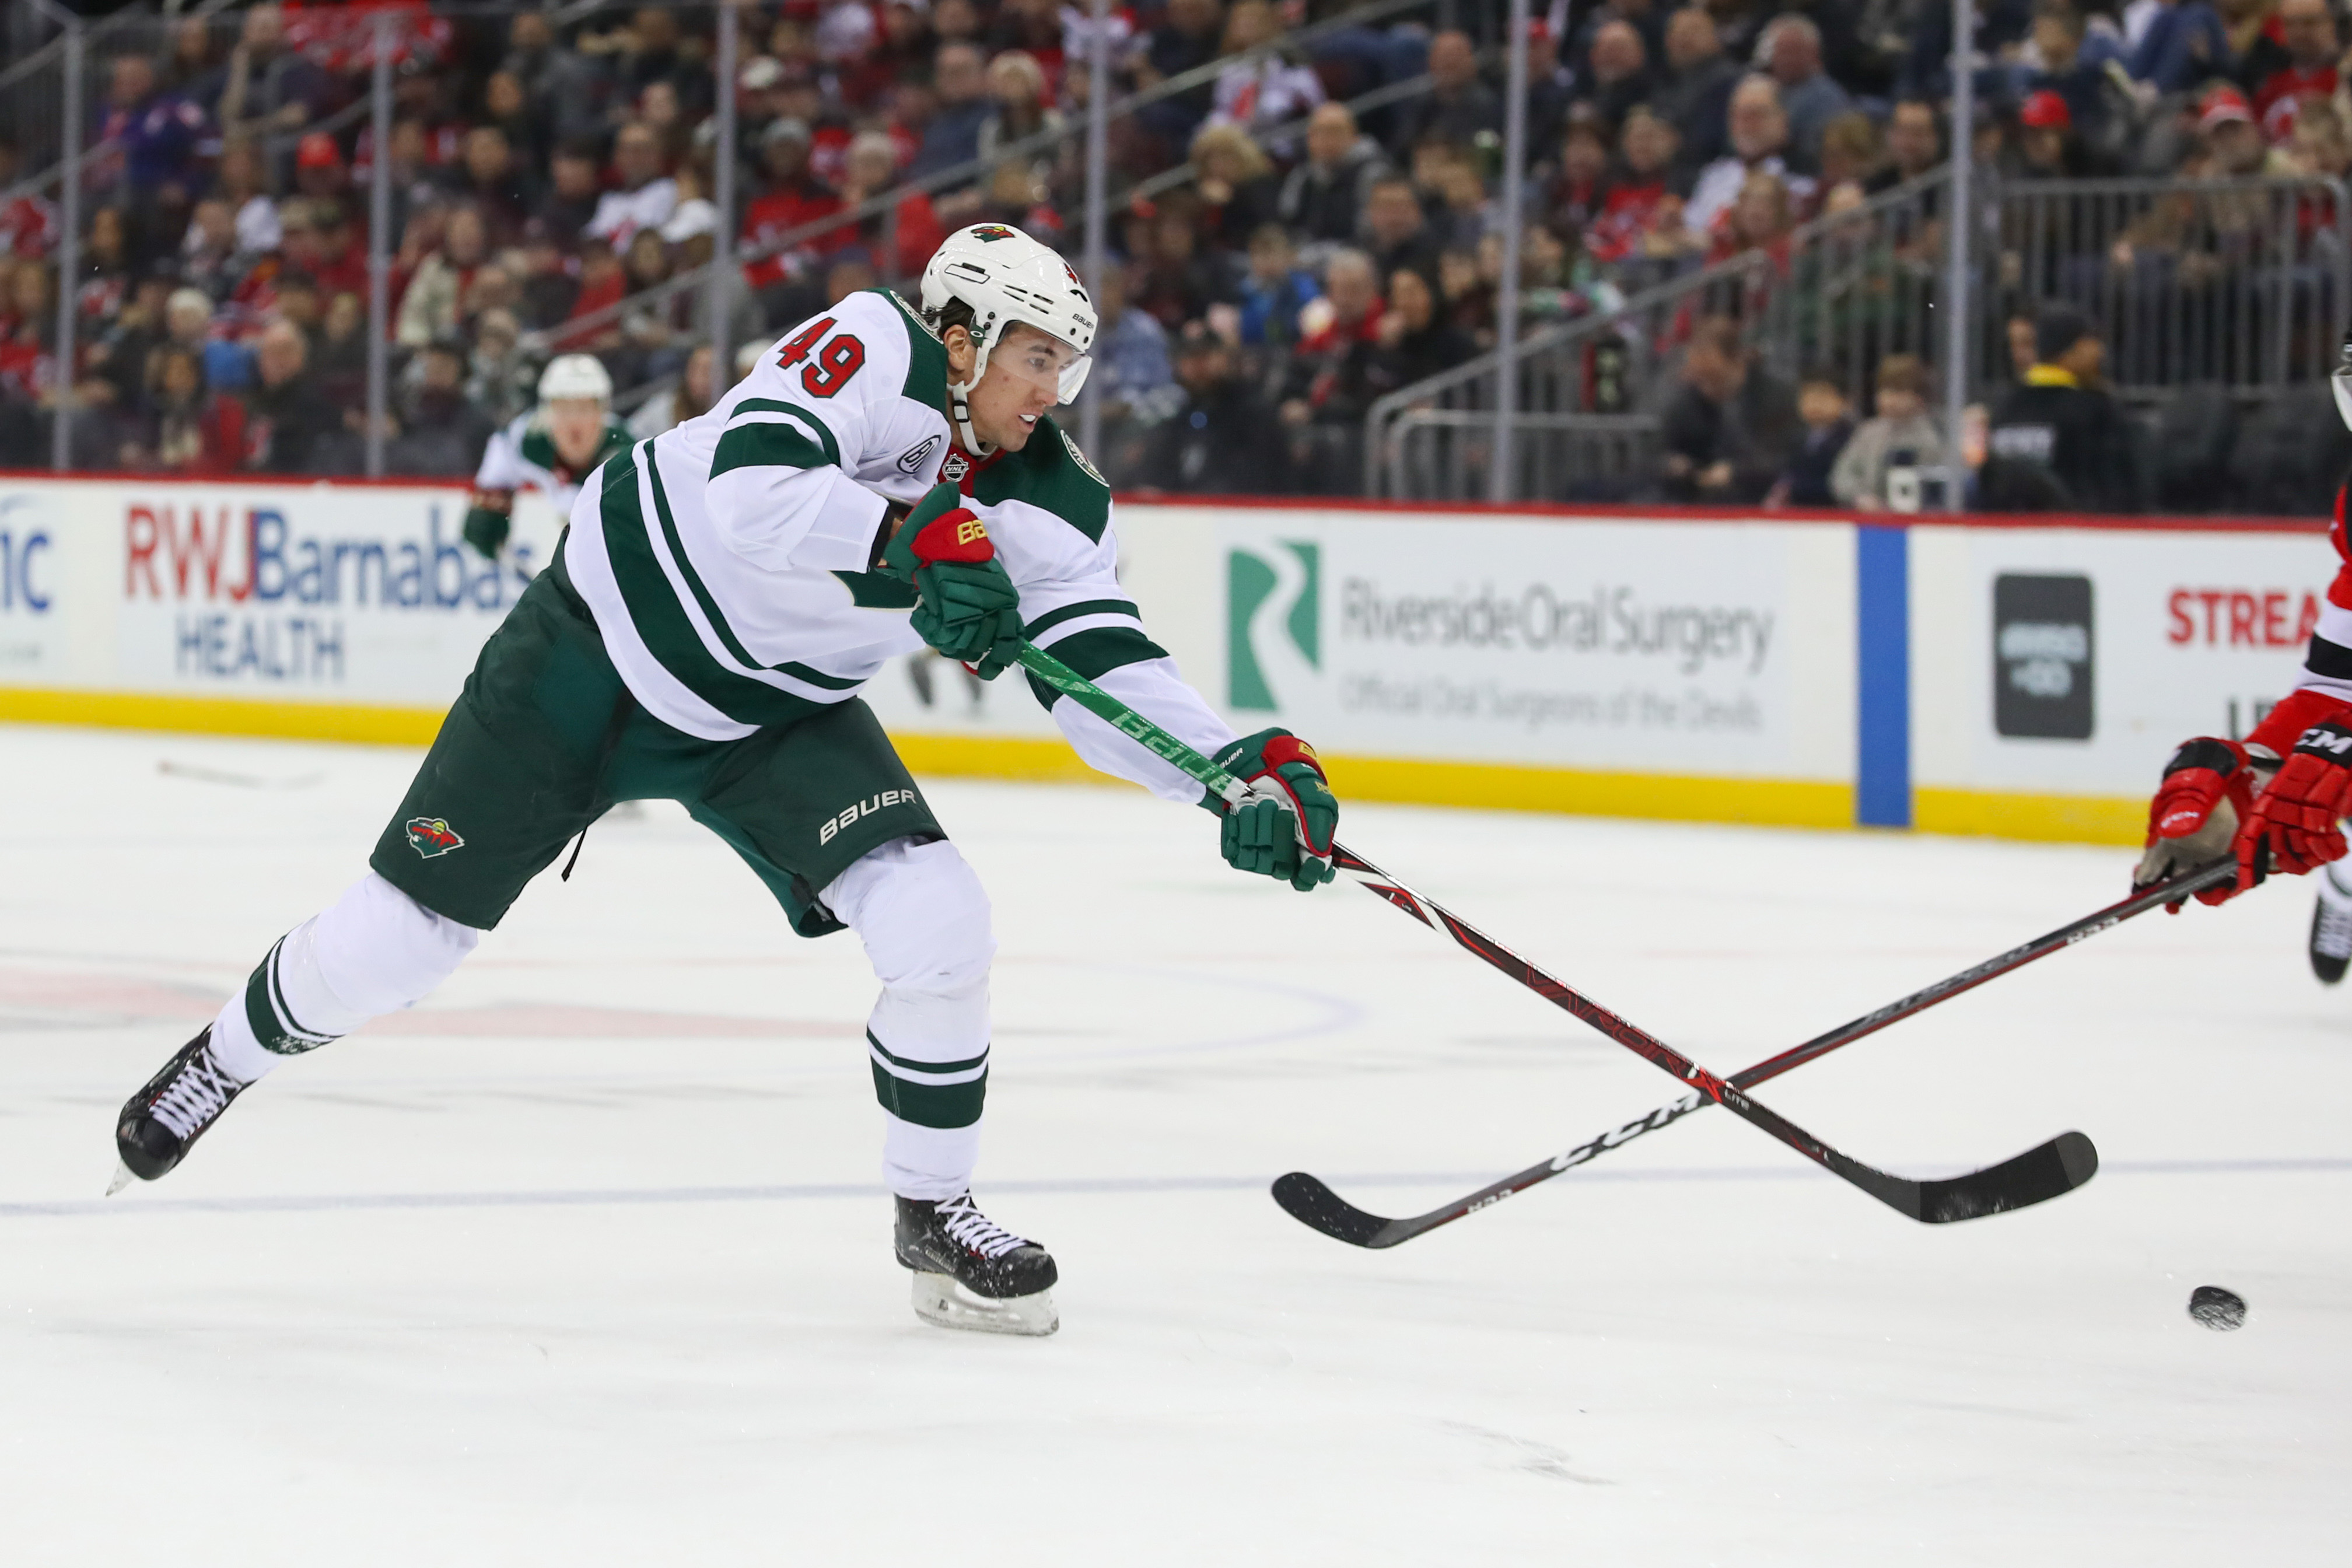 Wild Overcome a Controversial New Jersey Goal to Earn a 3-2 Victory